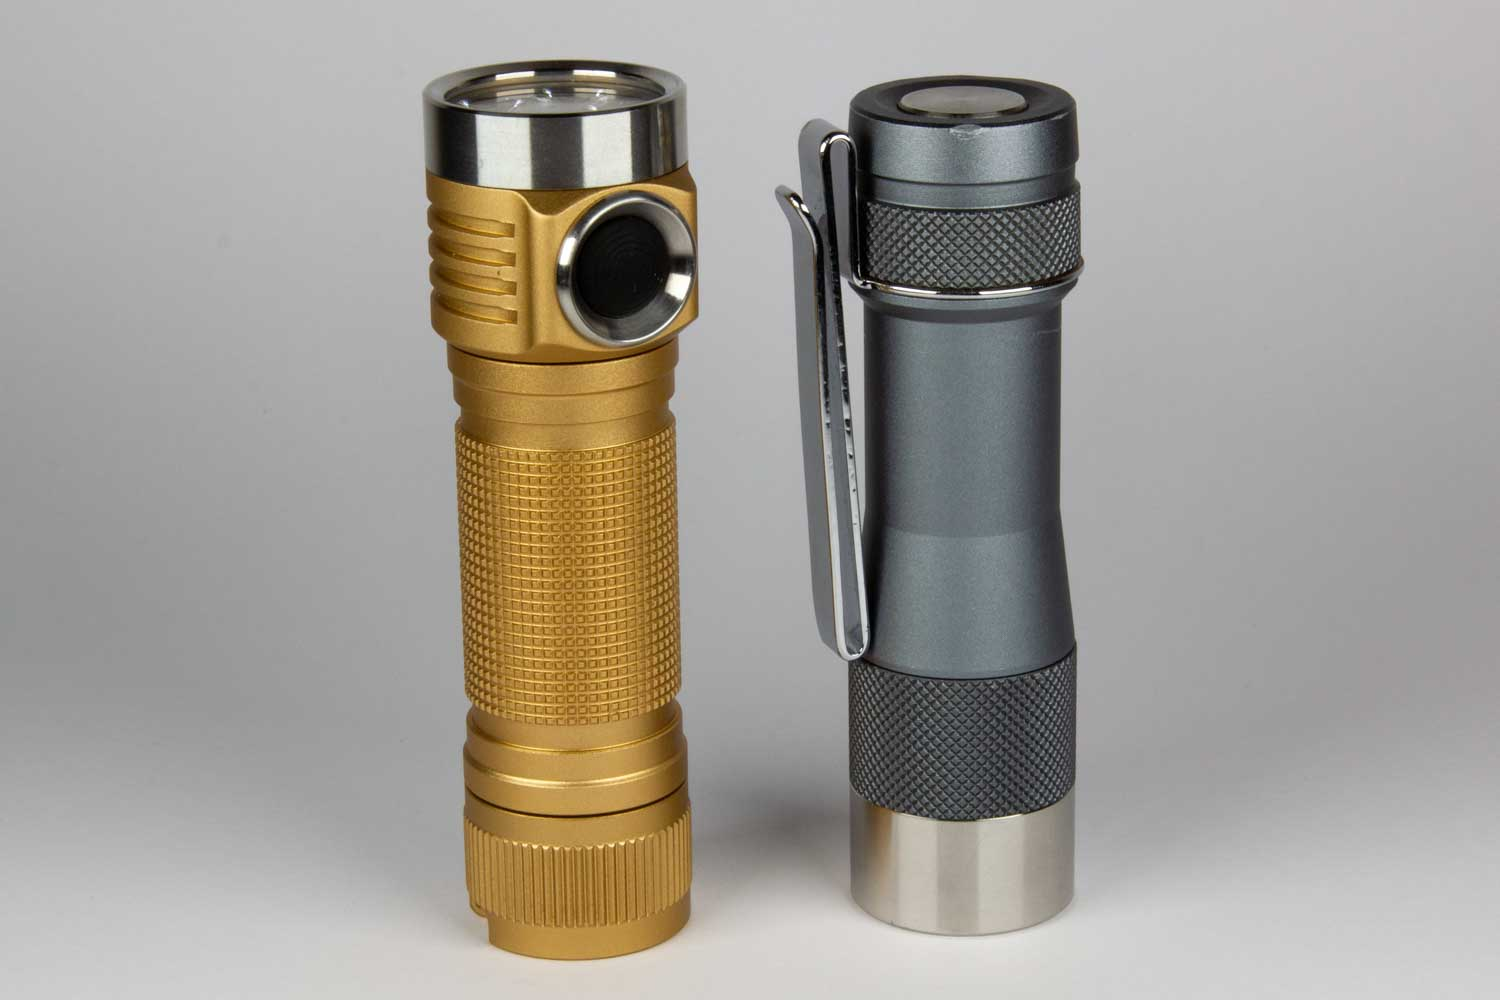 size comparison with lumintop fw3a torch